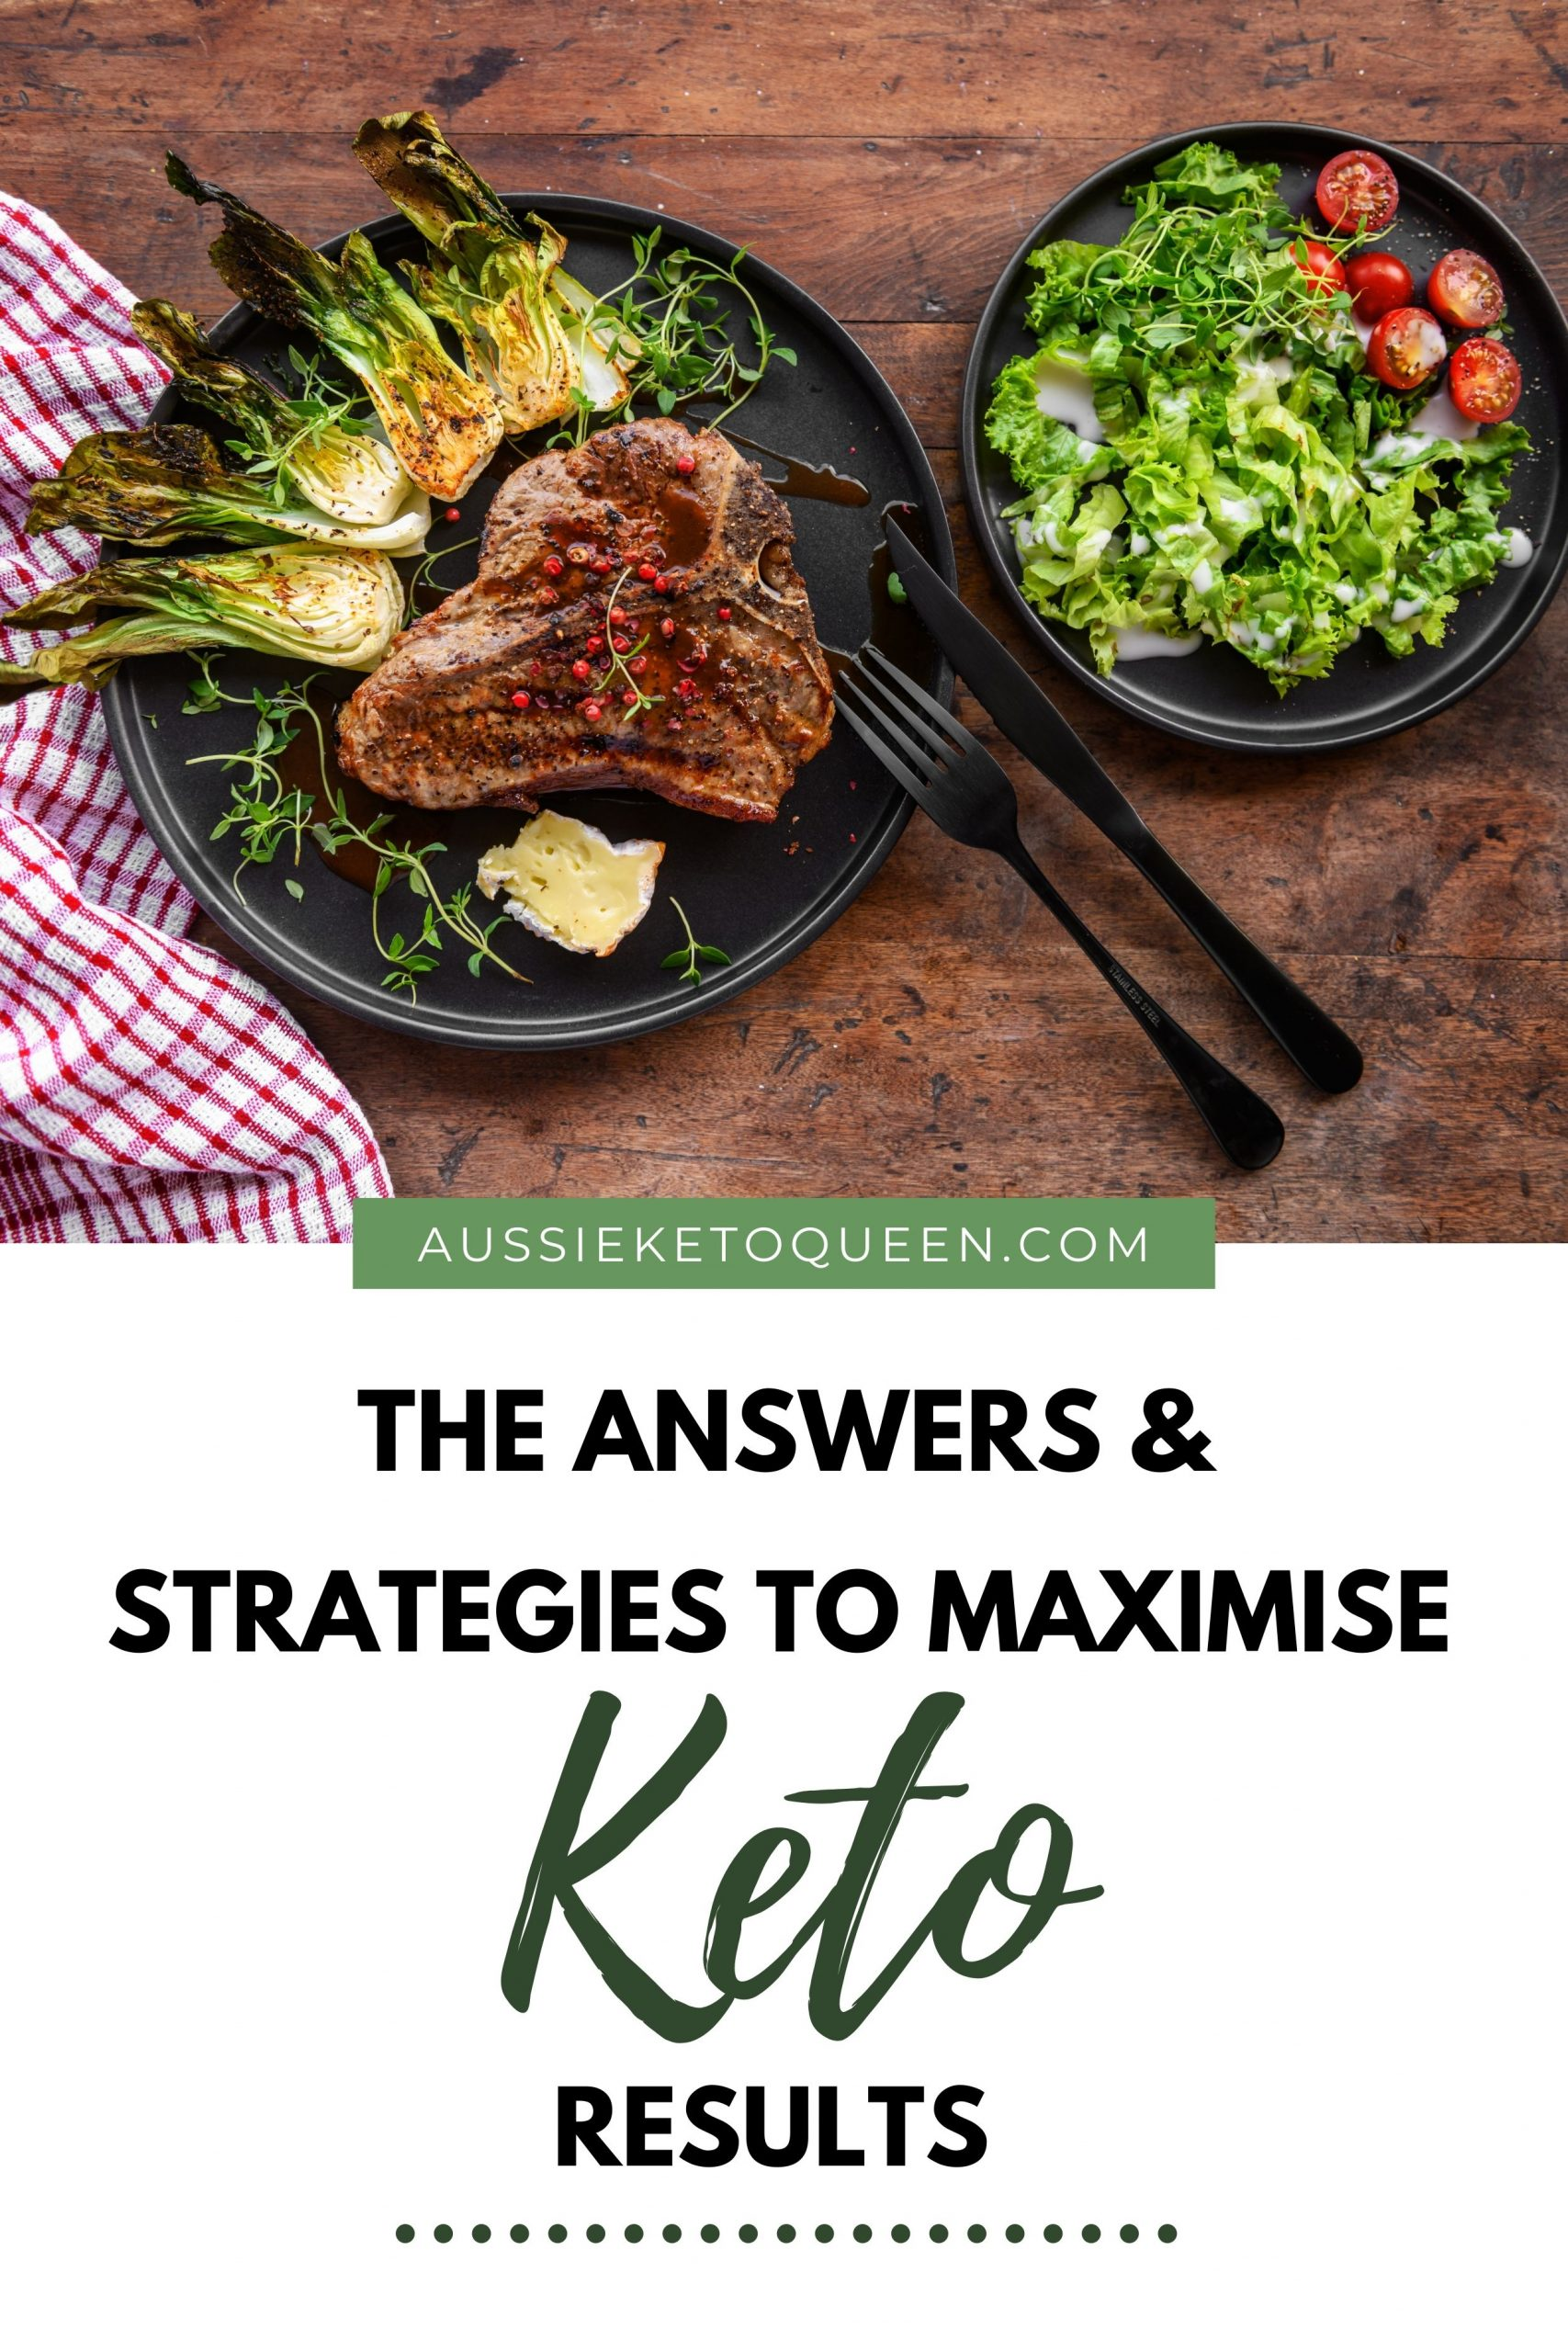 Do you need to Exercise on Keto? The Answers & Strategies to Maximise Keto Results